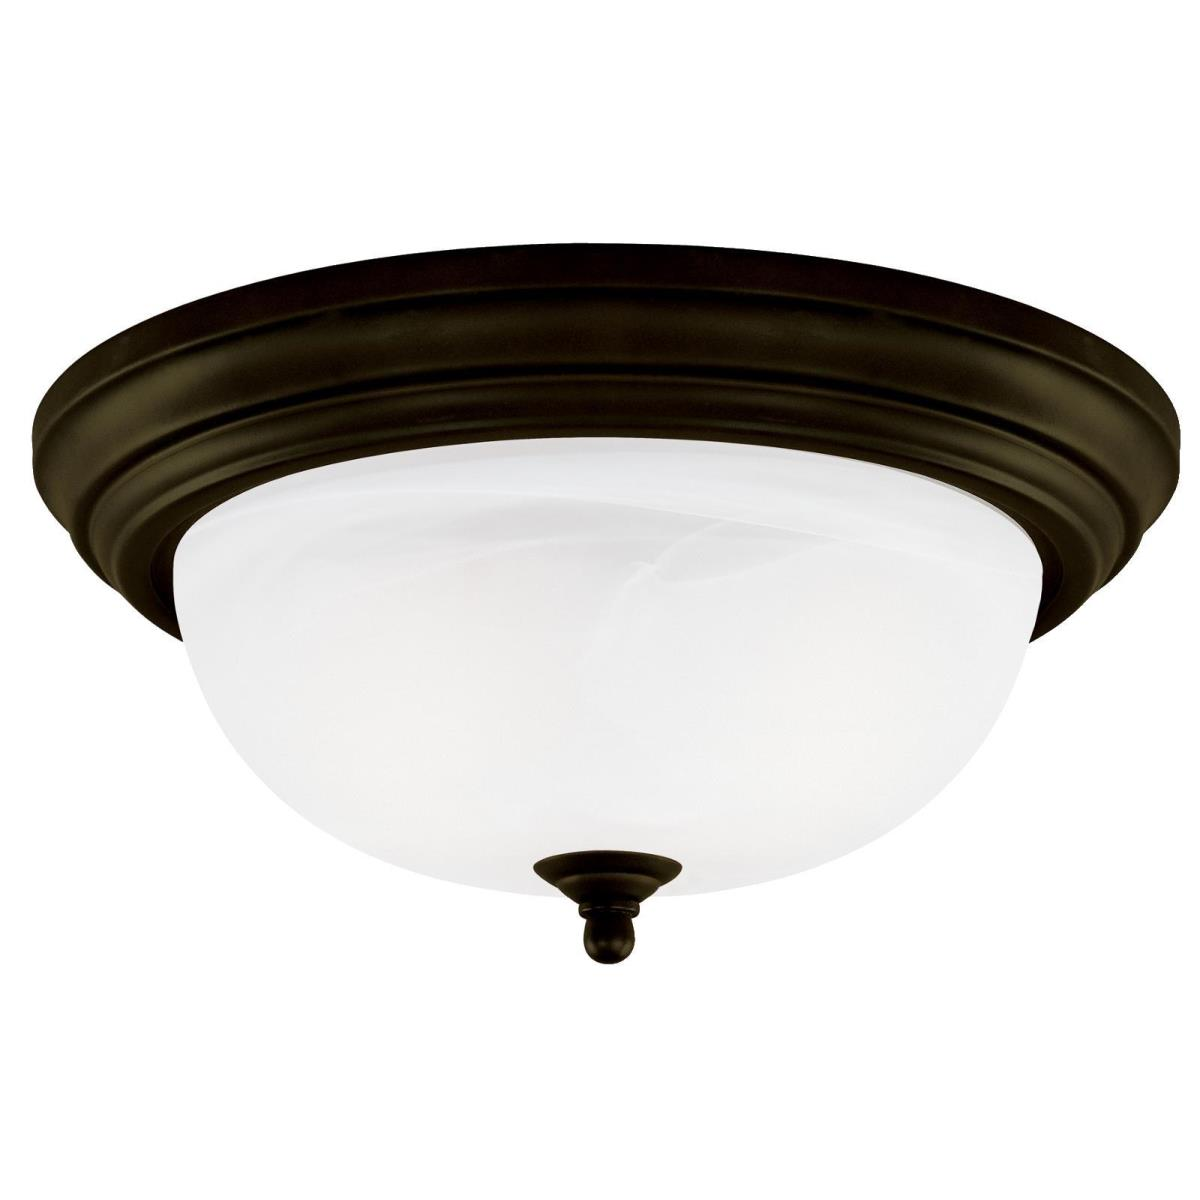 1 Light Flush Oil Rubbed Bronze Finish with Frosted White Alabaster Glass